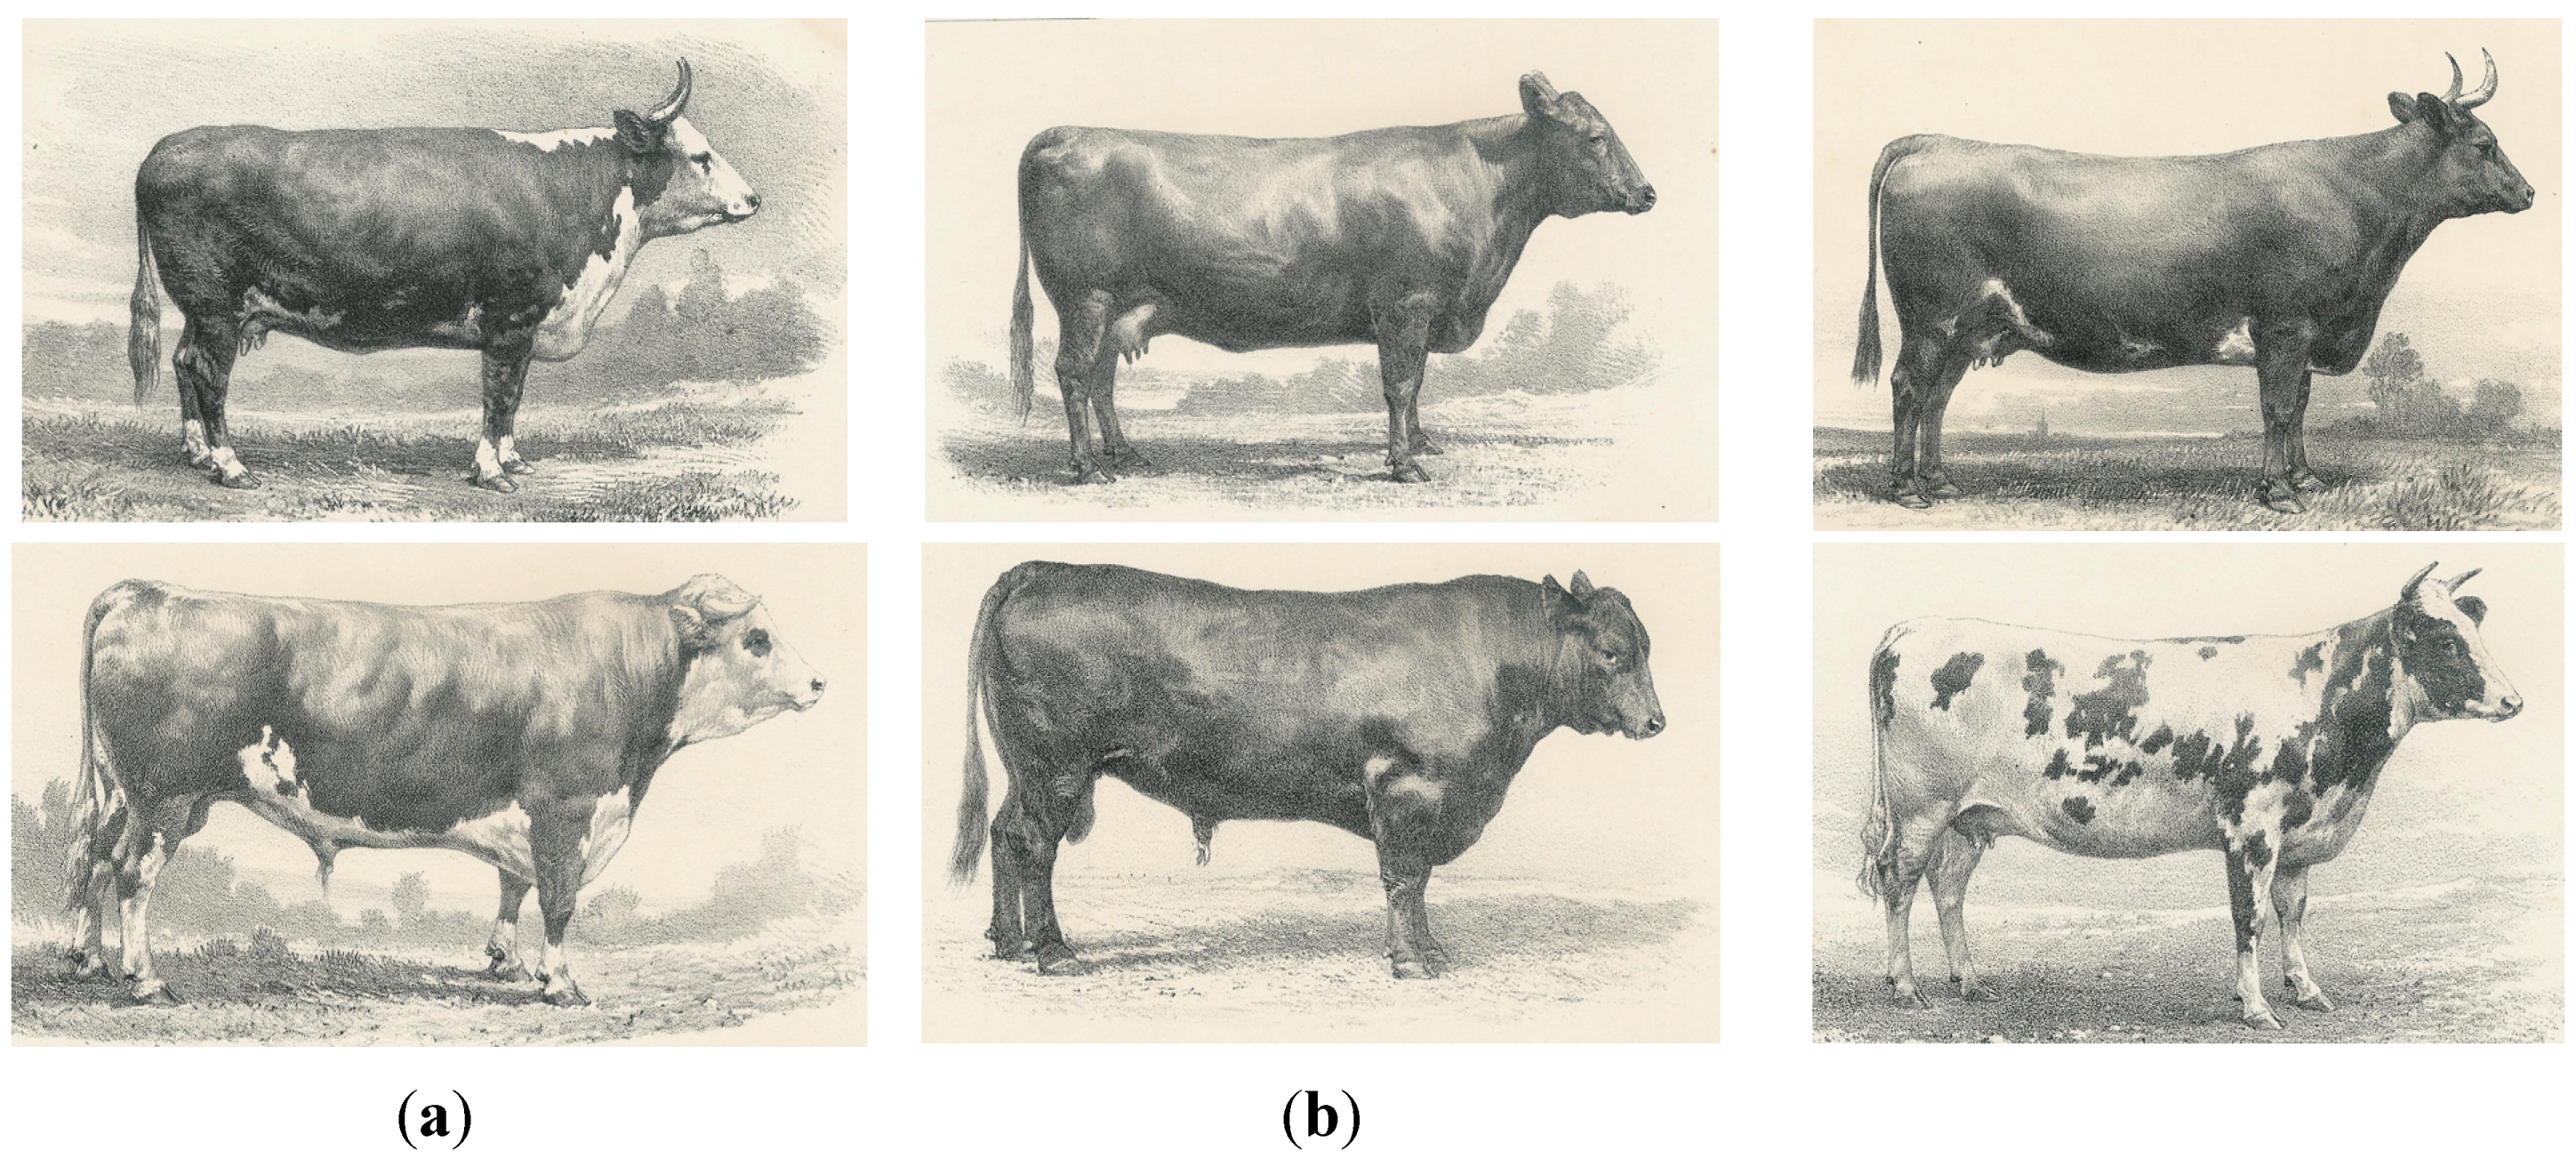 Diversity Free Full Text On The History Of Cattle